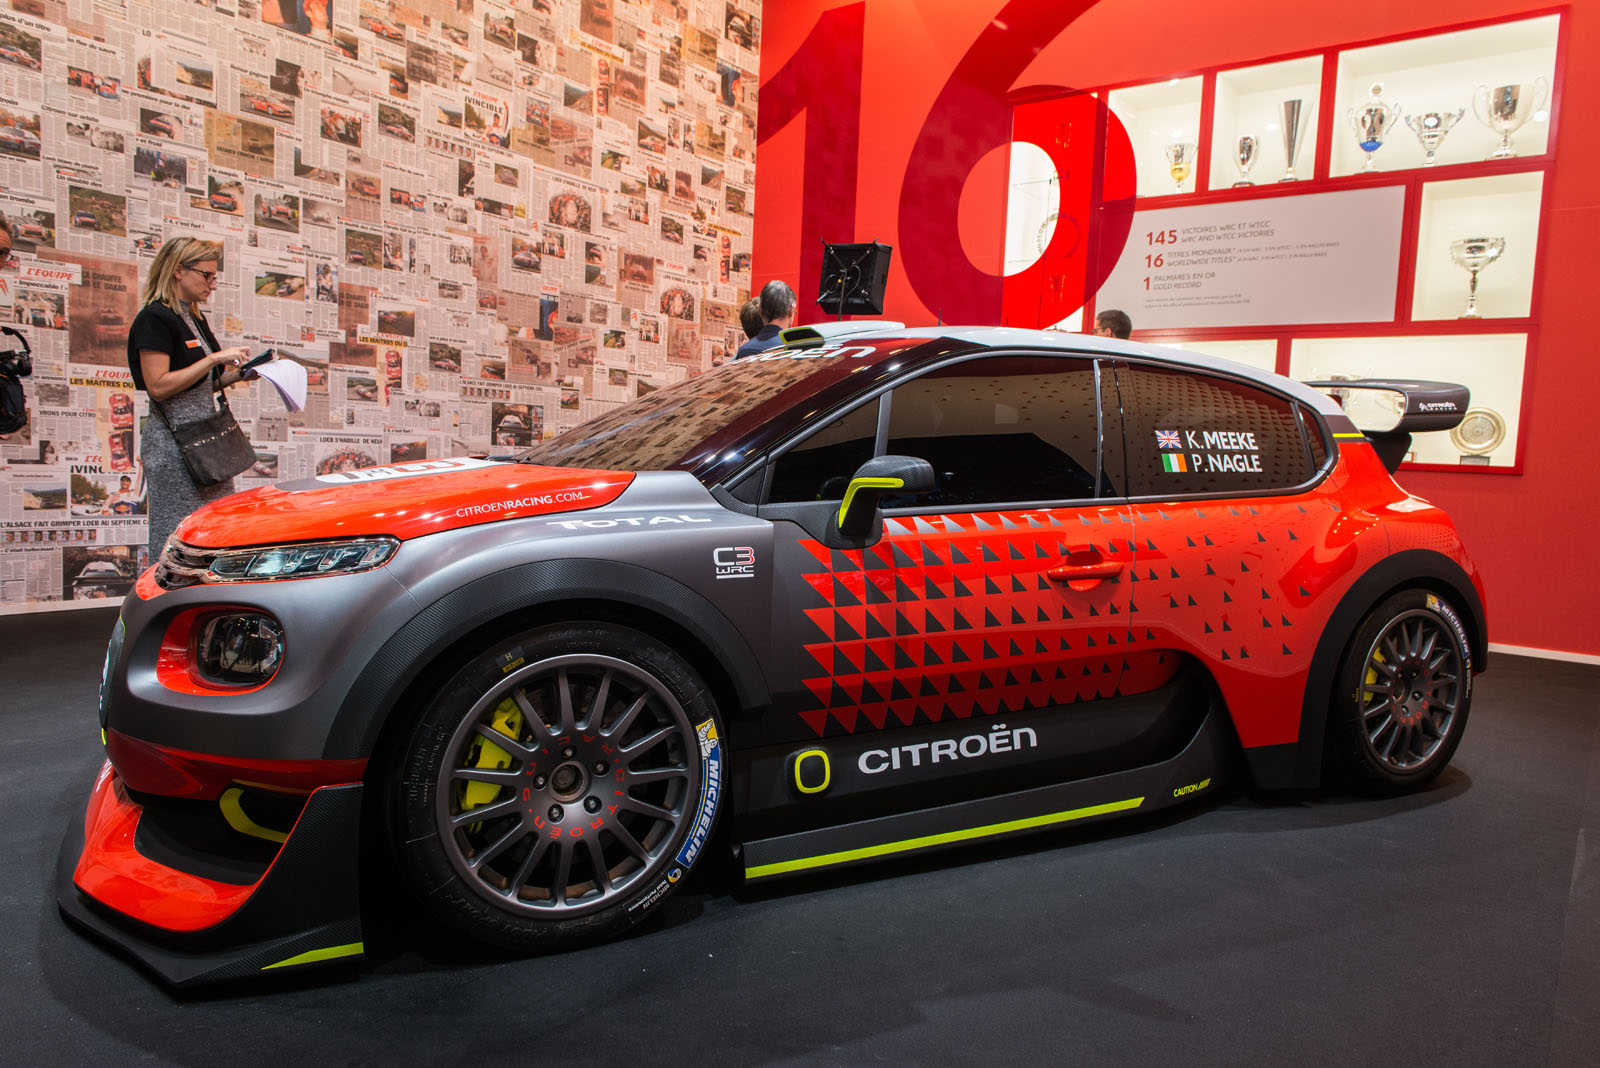 citro n c3 wrc concept previews a return to rally dominance carscoops. Black Bedroom Furniture Sets. Home Design Ideas